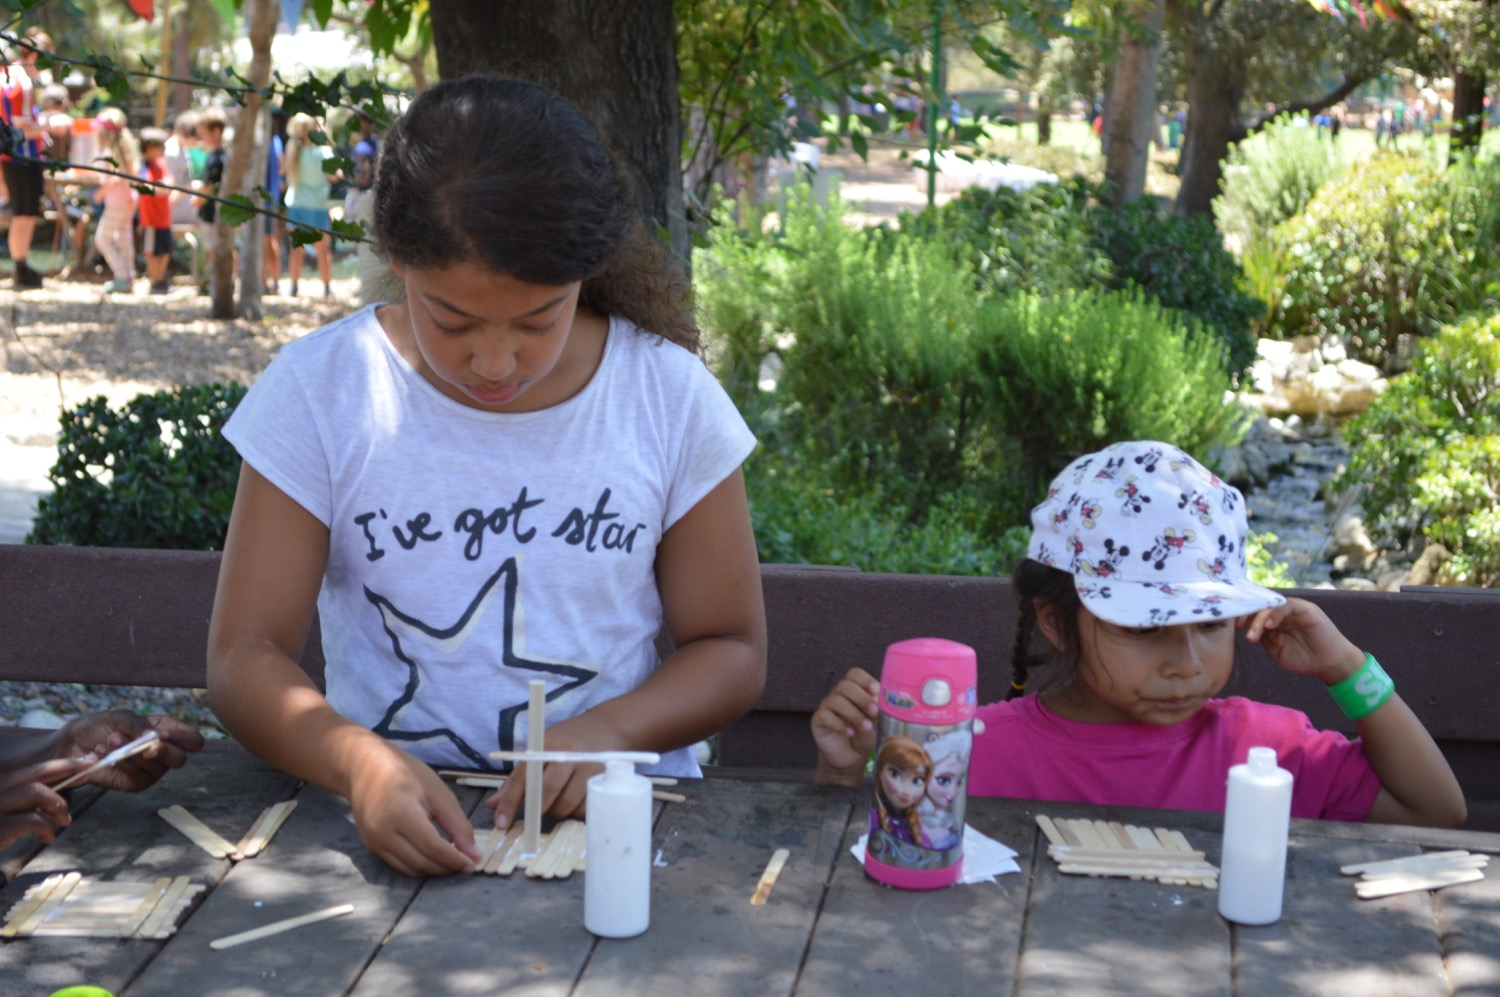 The mix of activities includes games and crafts,